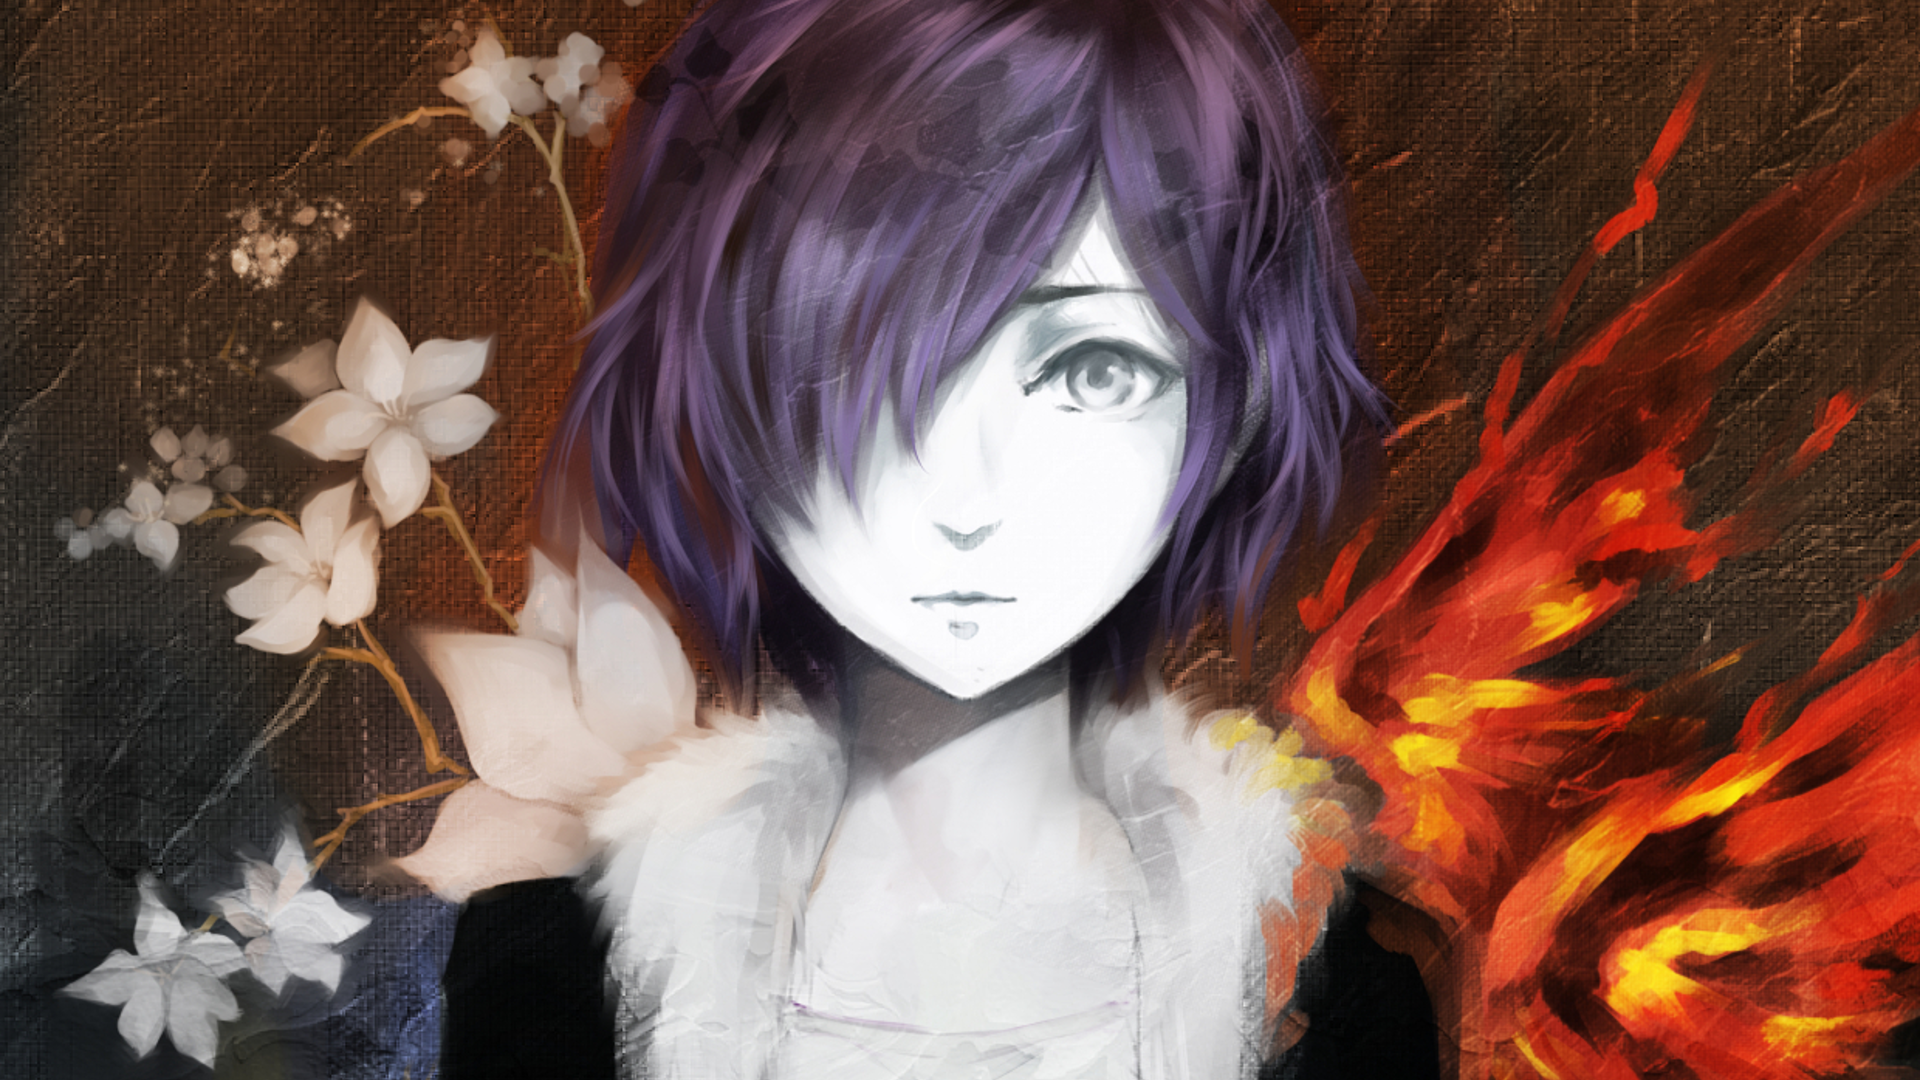 Pin on Touka Kirishima